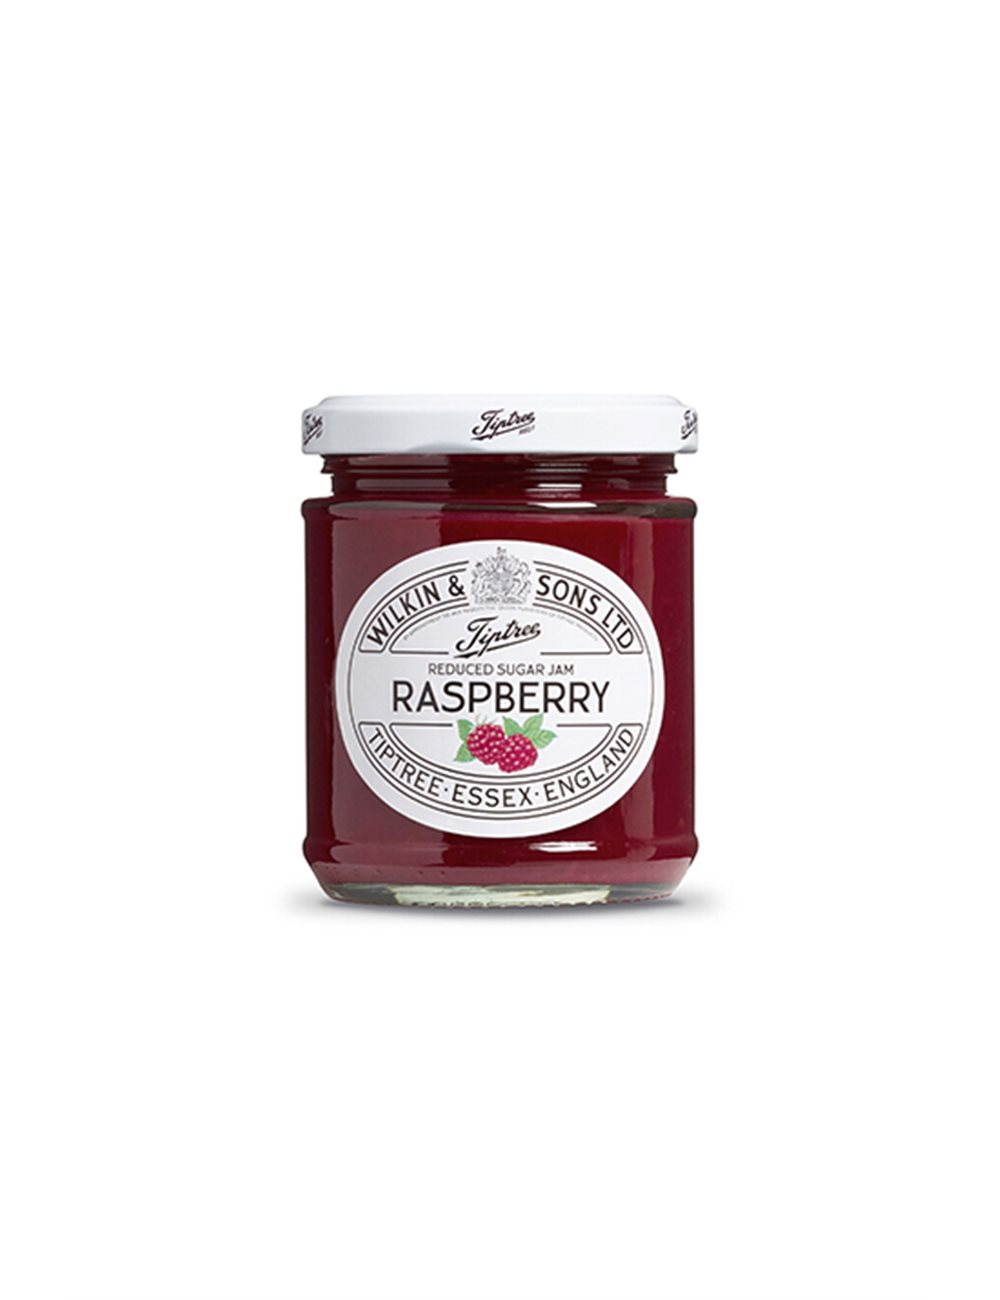 Reduced Sugar Preserve Raspberry 65% 200g